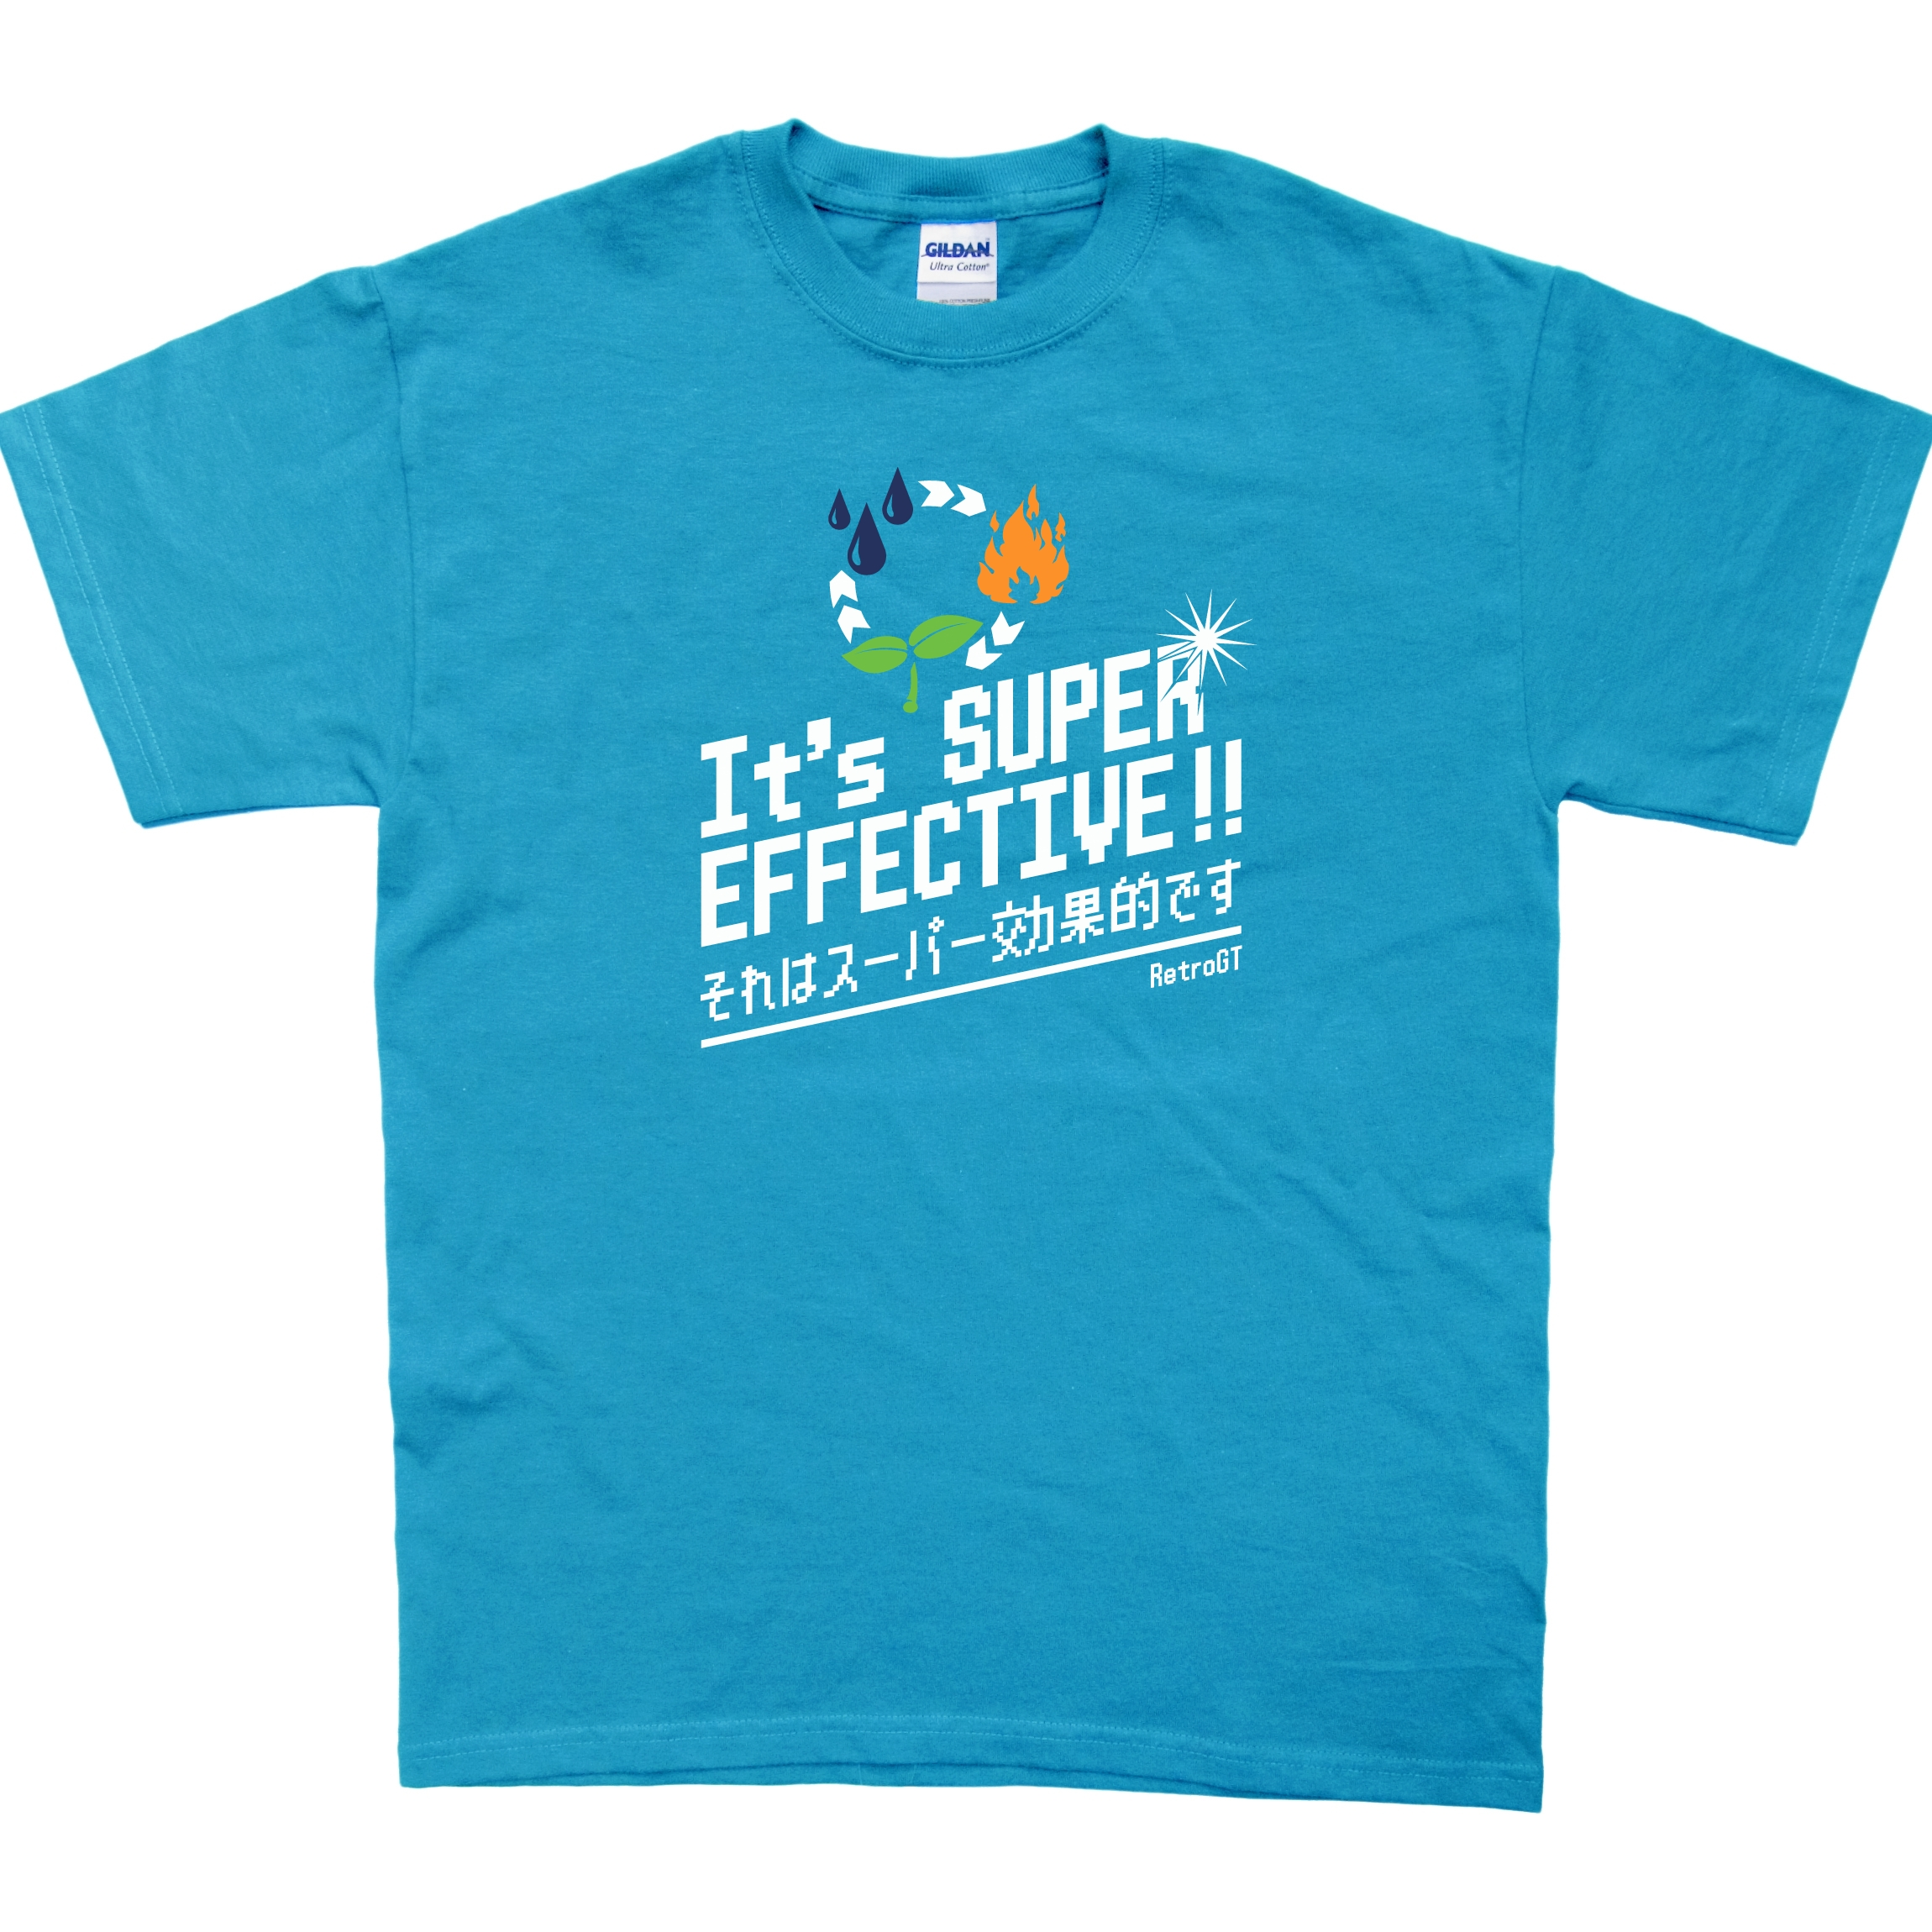 Alternative photo: It's Super Effective! T-Shirt